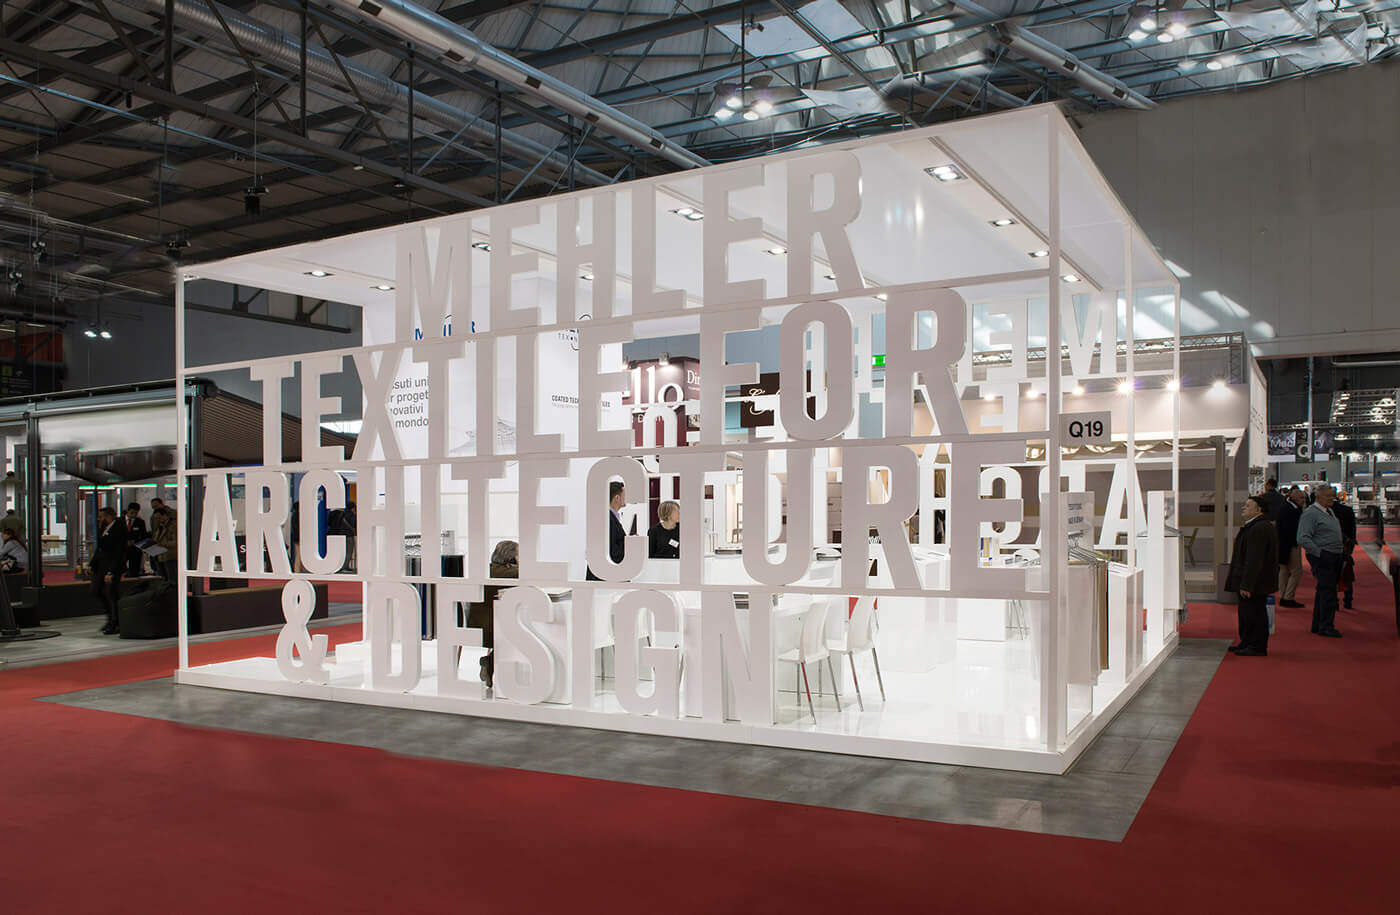 expo milano stand fieristico Mehler Texnologies,